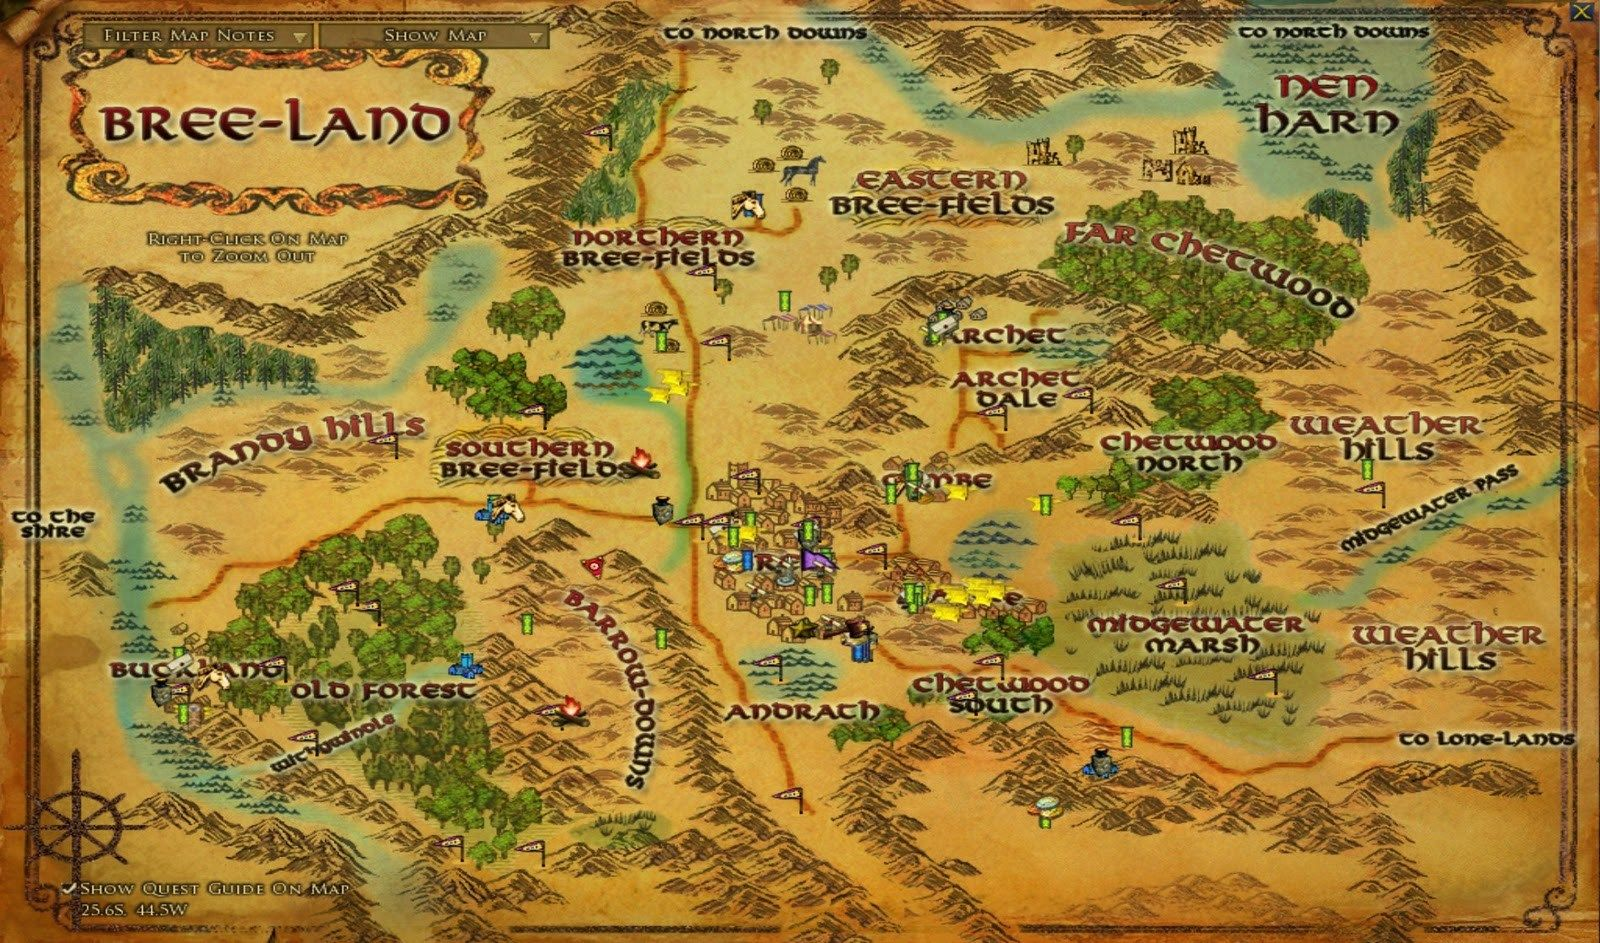 Map For Lord Of The Rings%0A Frau mit Kampfgeist   Der Hobbit   Pinterest   Evangeline lilly  Wallpaper  and Photo manipulation